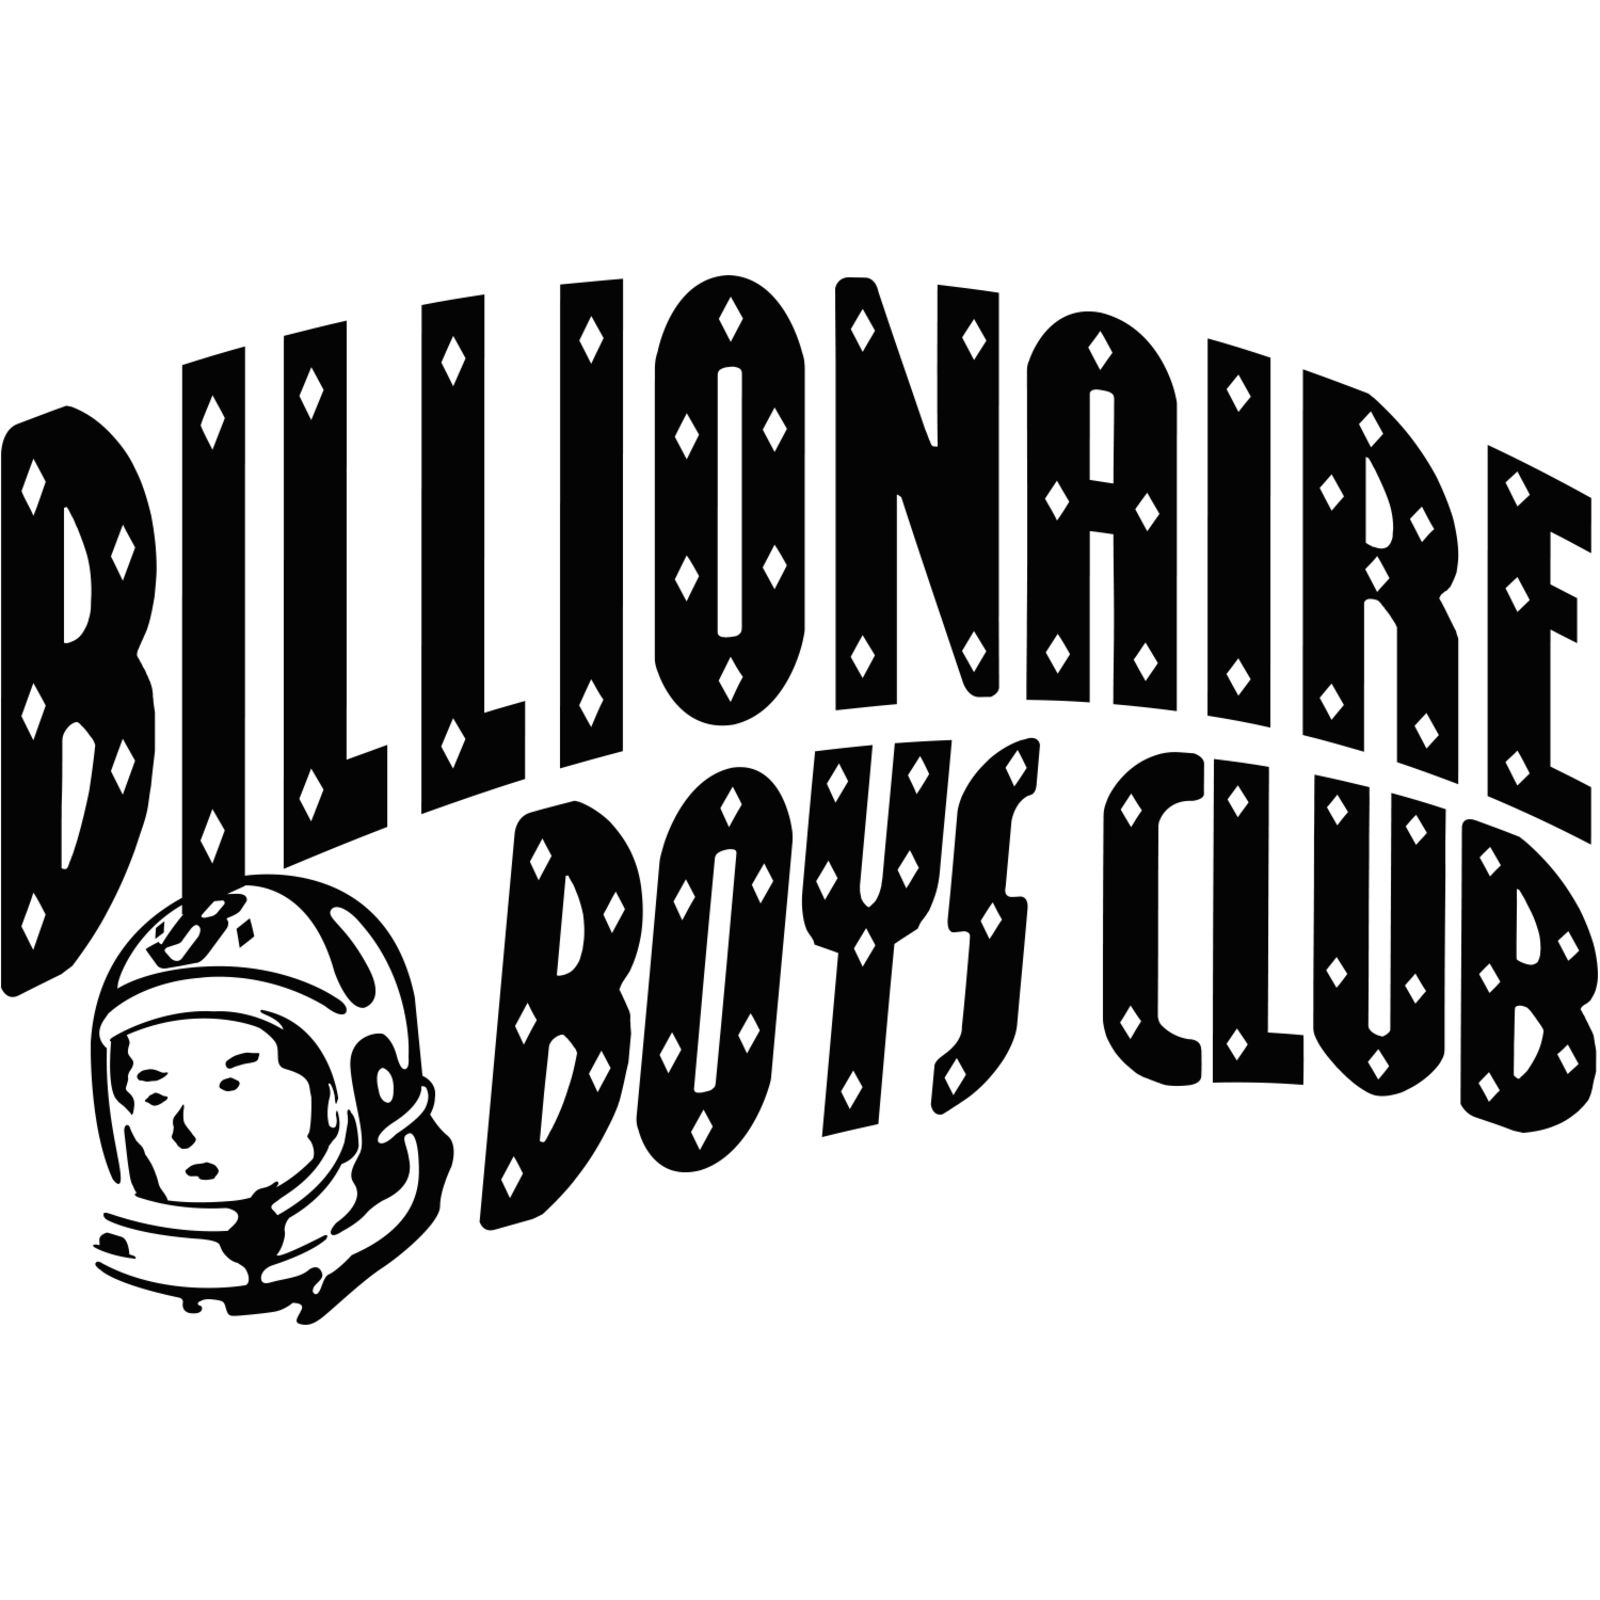 BBC Billionaire Boys Club